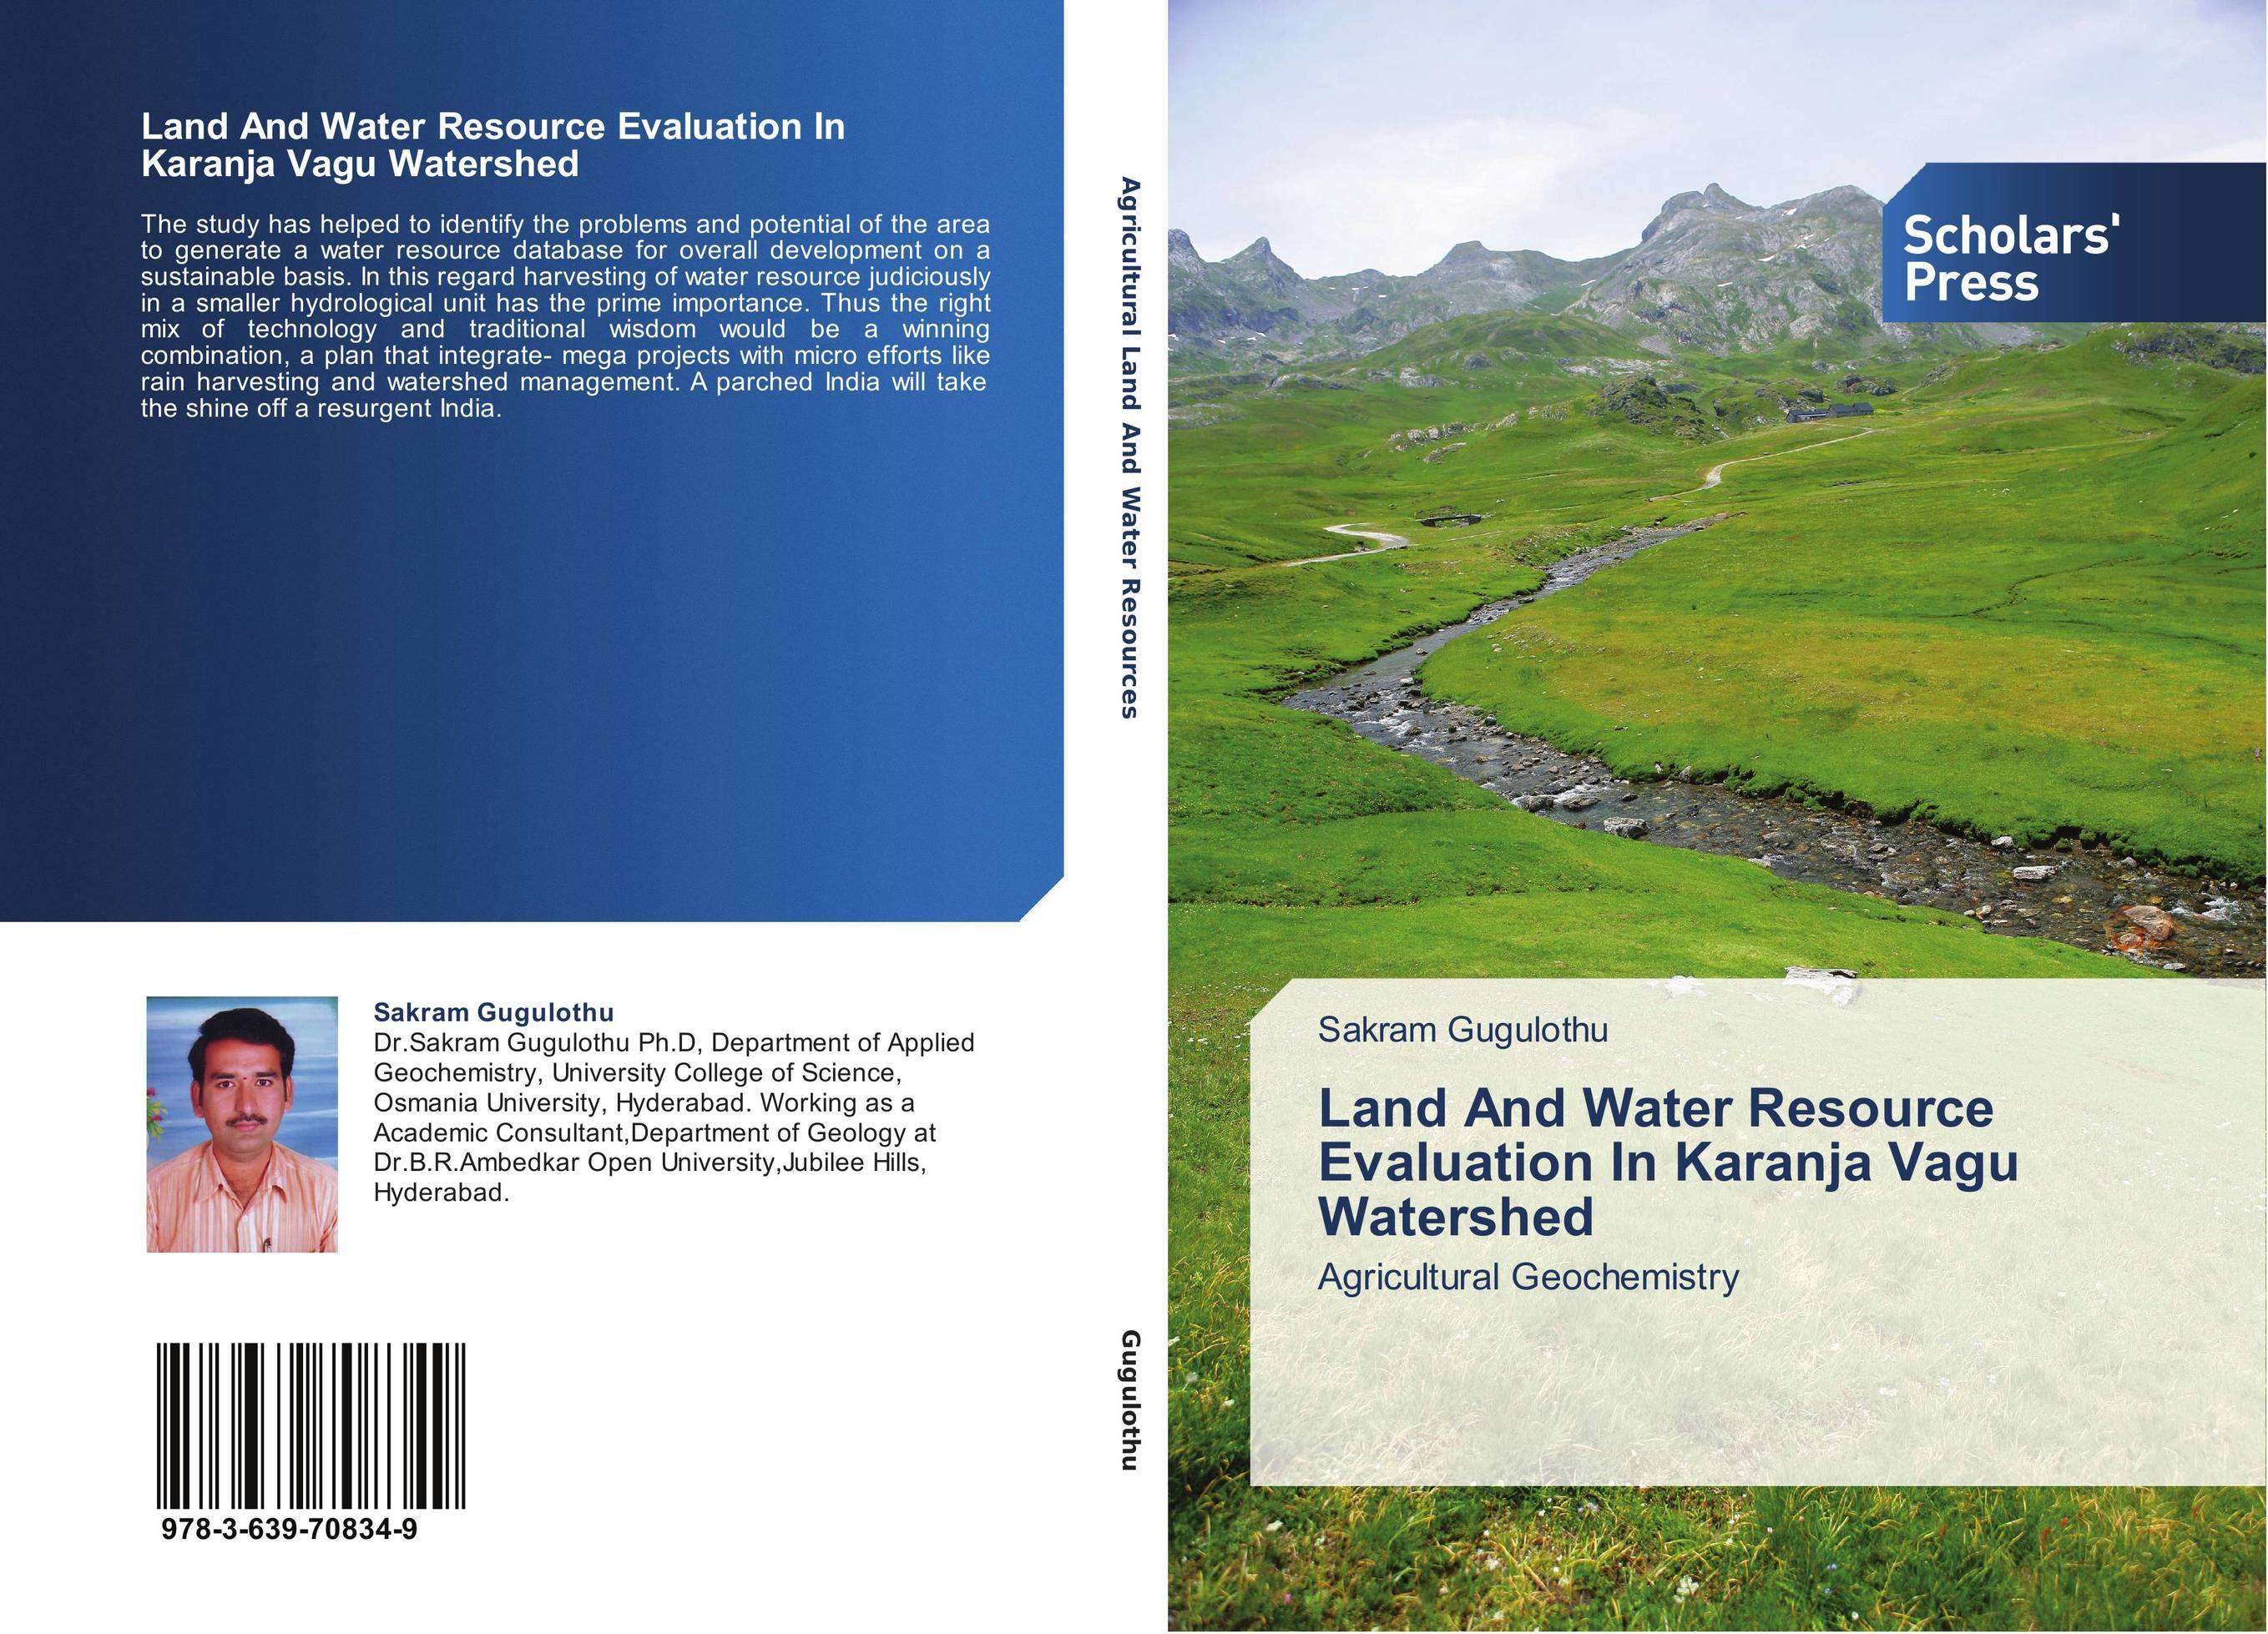 thesis in watershed management Web‐based partcipatory gis for watershed management: lapwai creek watershed a thesis presented in partial fulfillment.